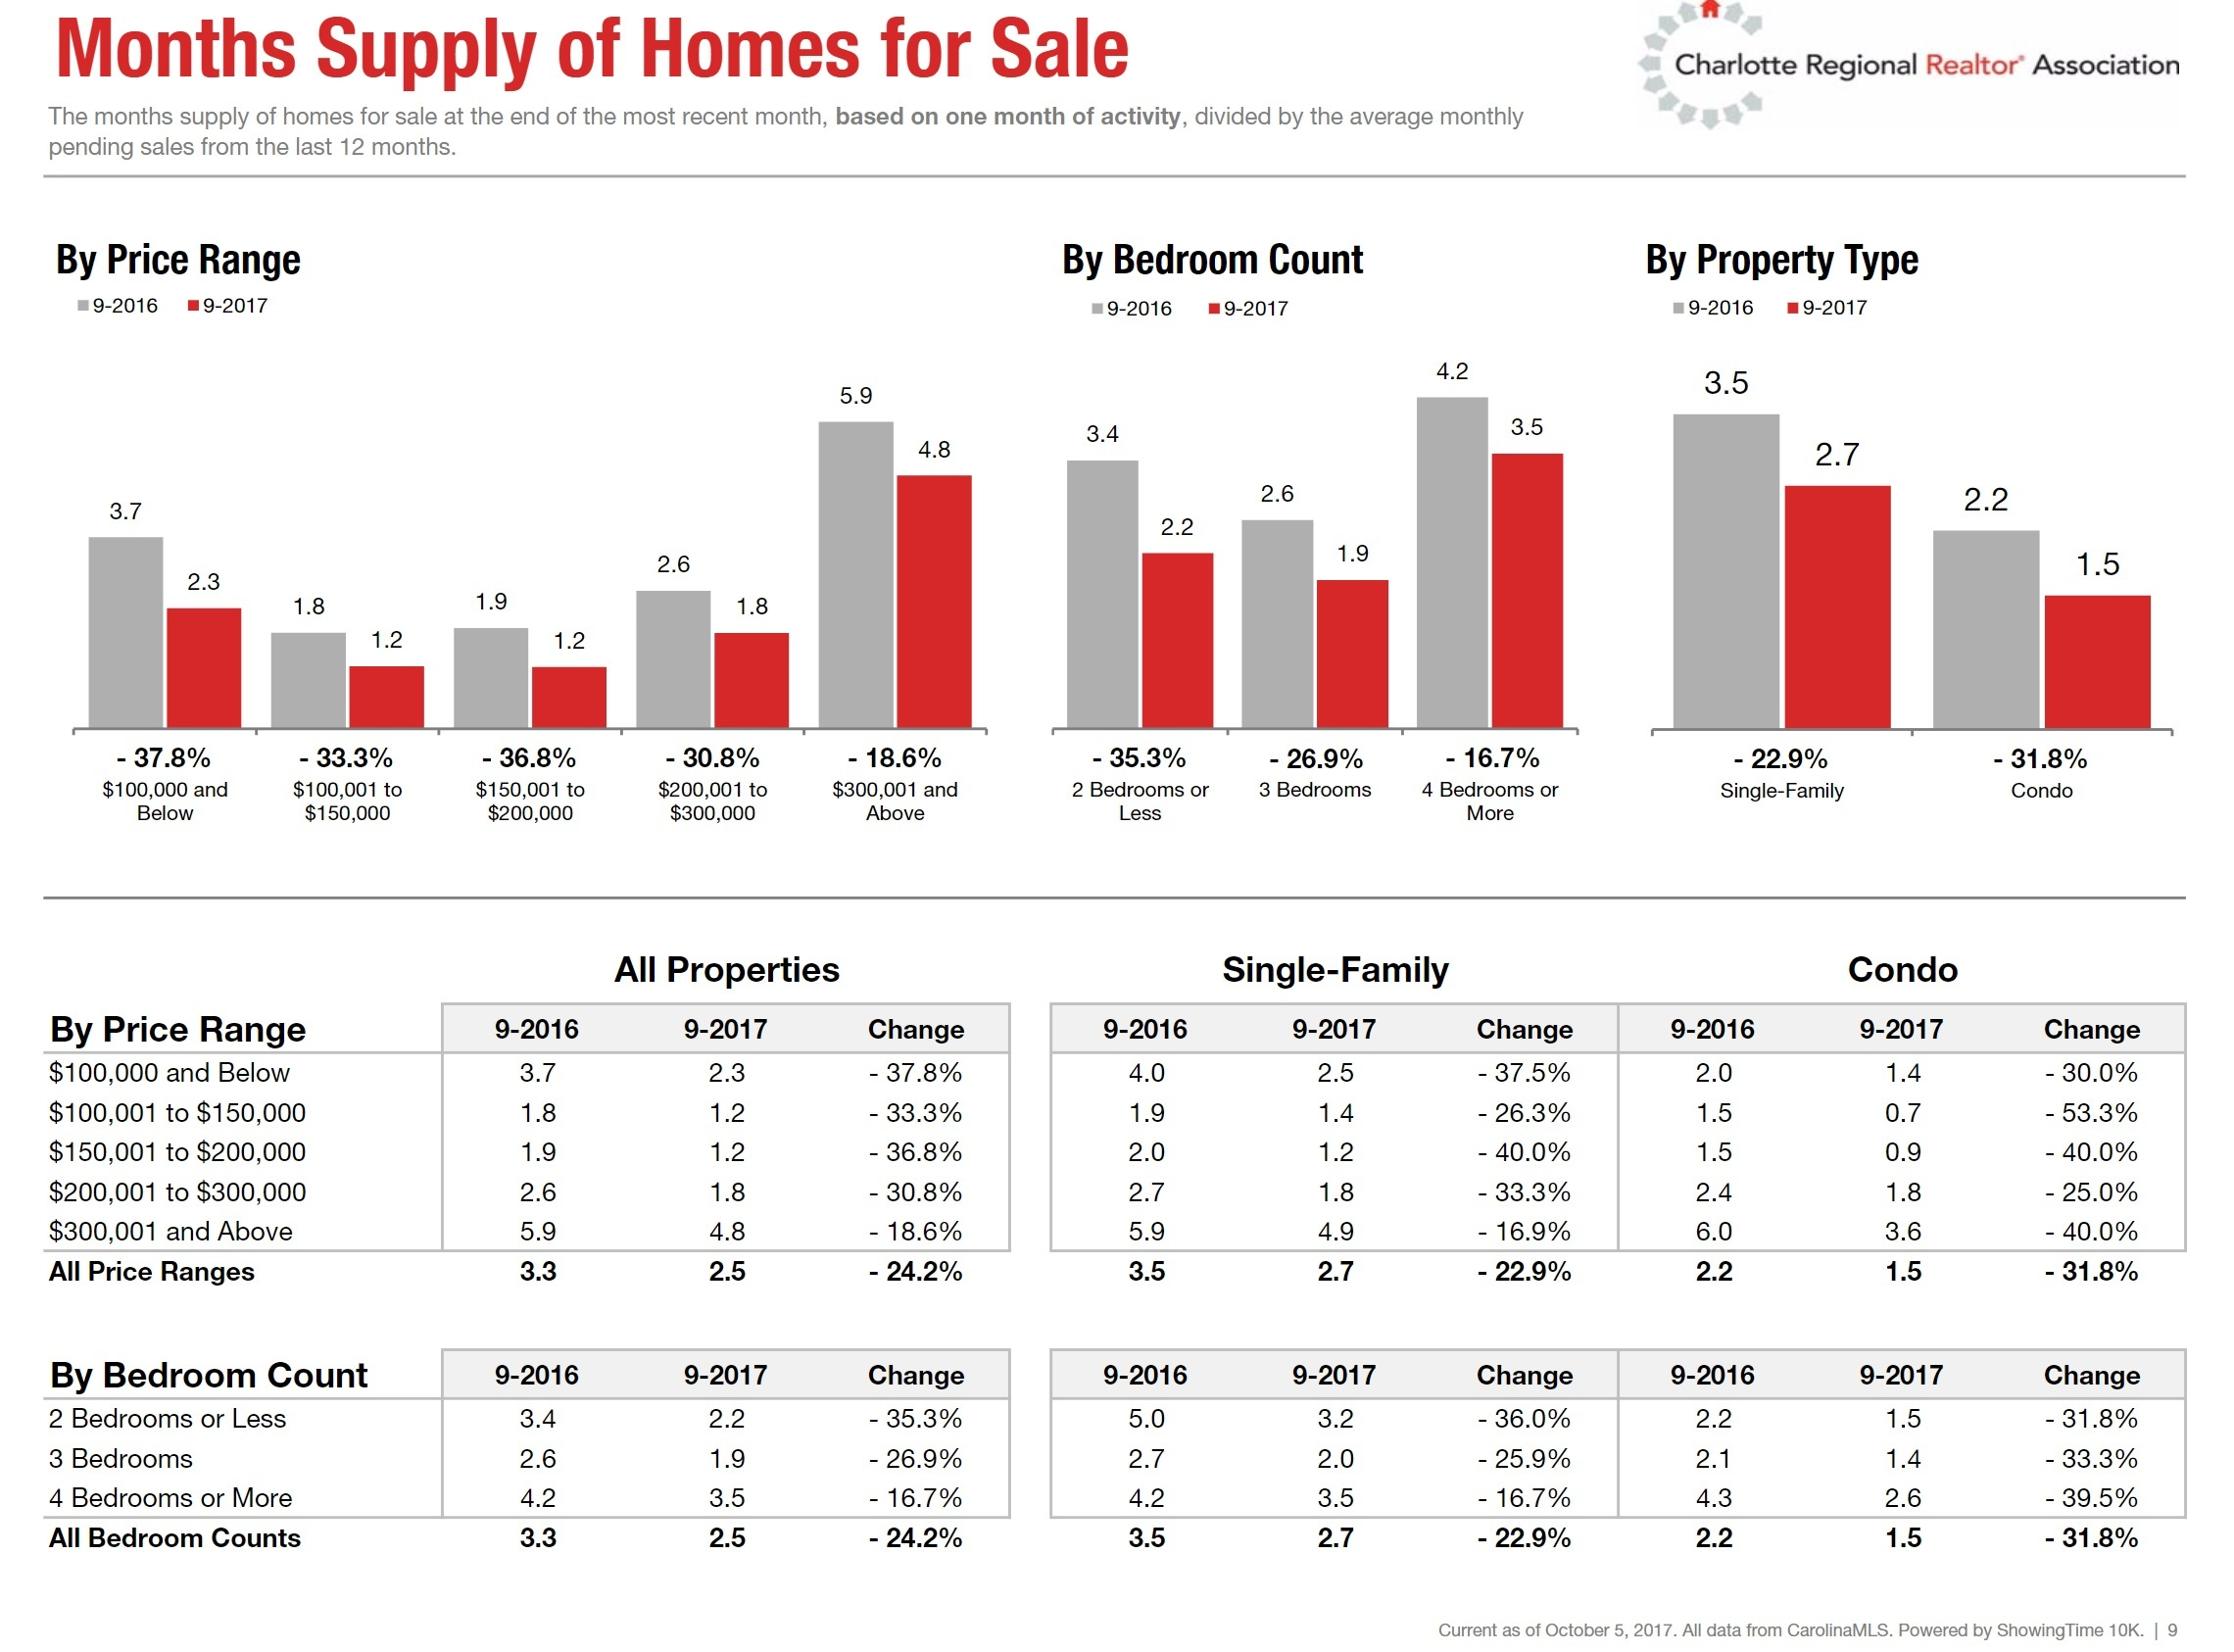 Charlotte, NC Months Supply of Homes for Sale: September 2017